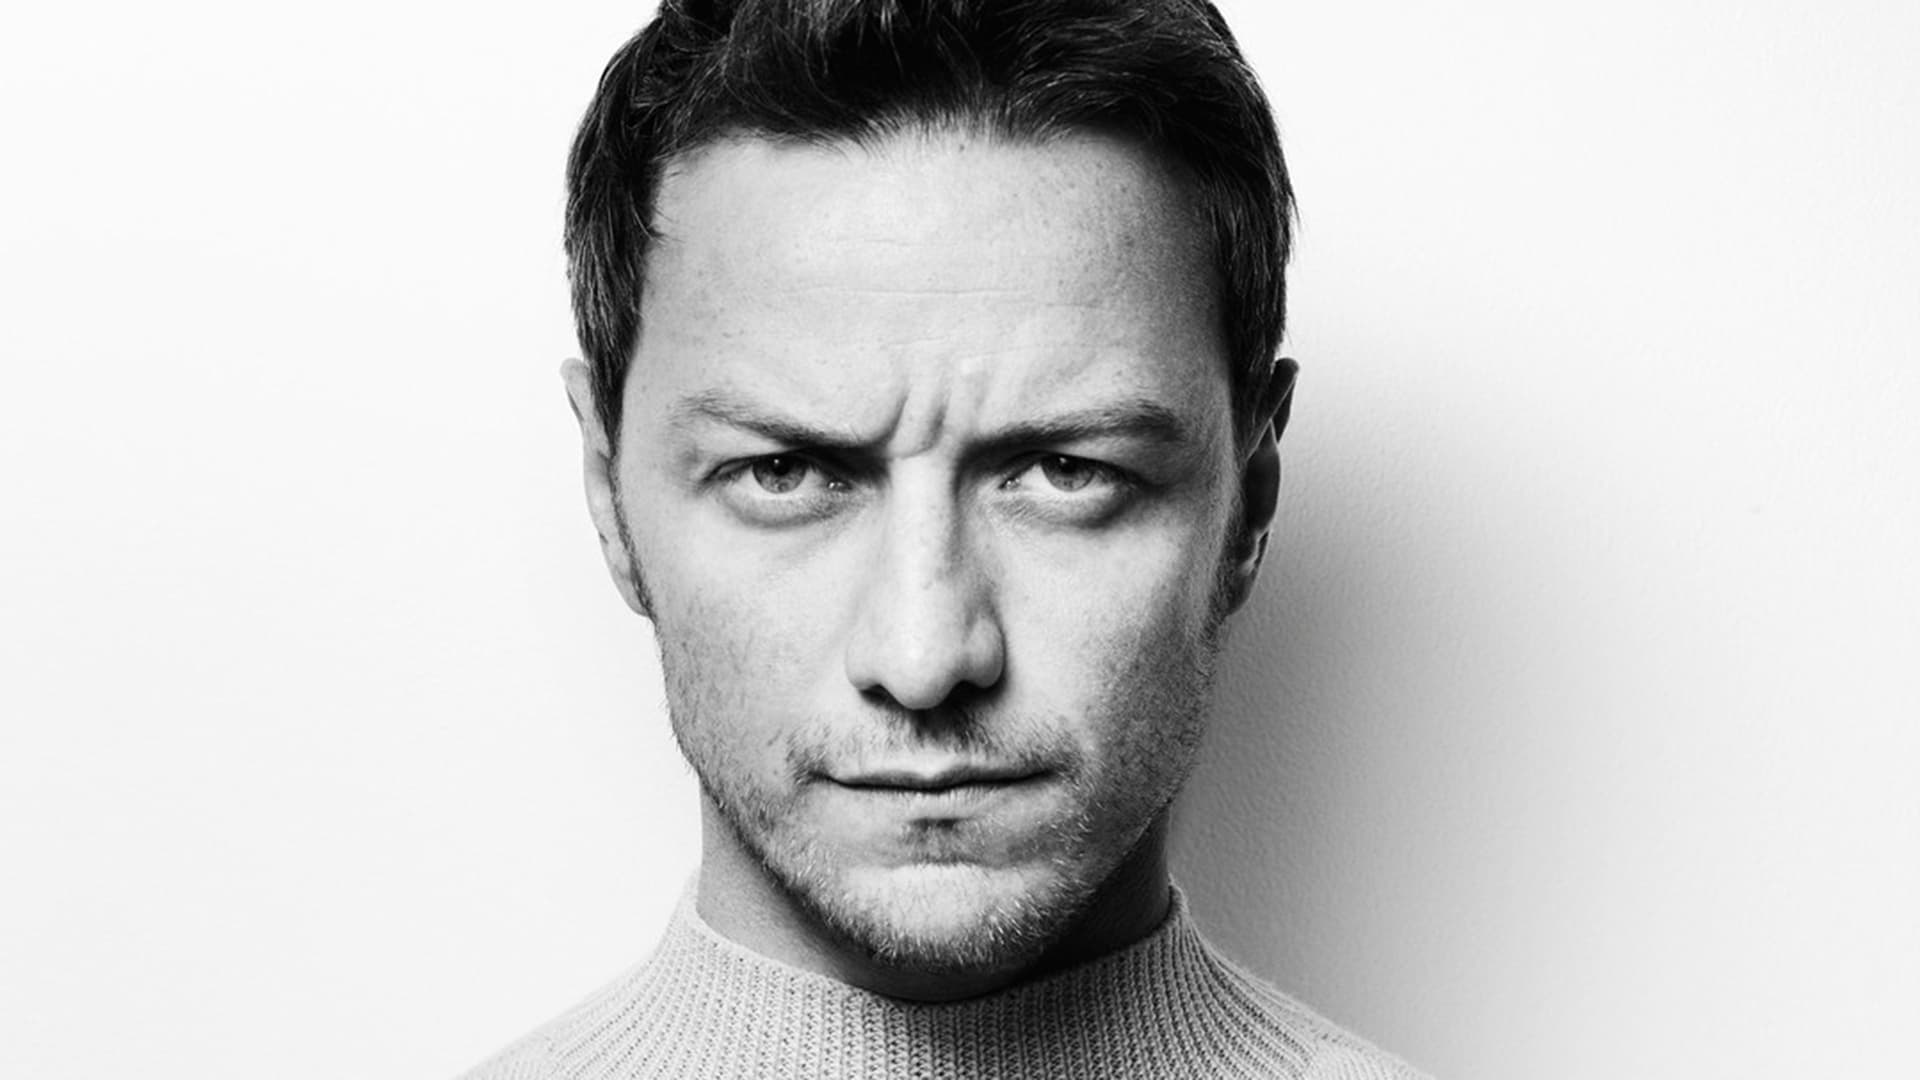 Car Boy Hd Wallpaper 14 James Mcavoy Wallpapers Hd High Quality Download